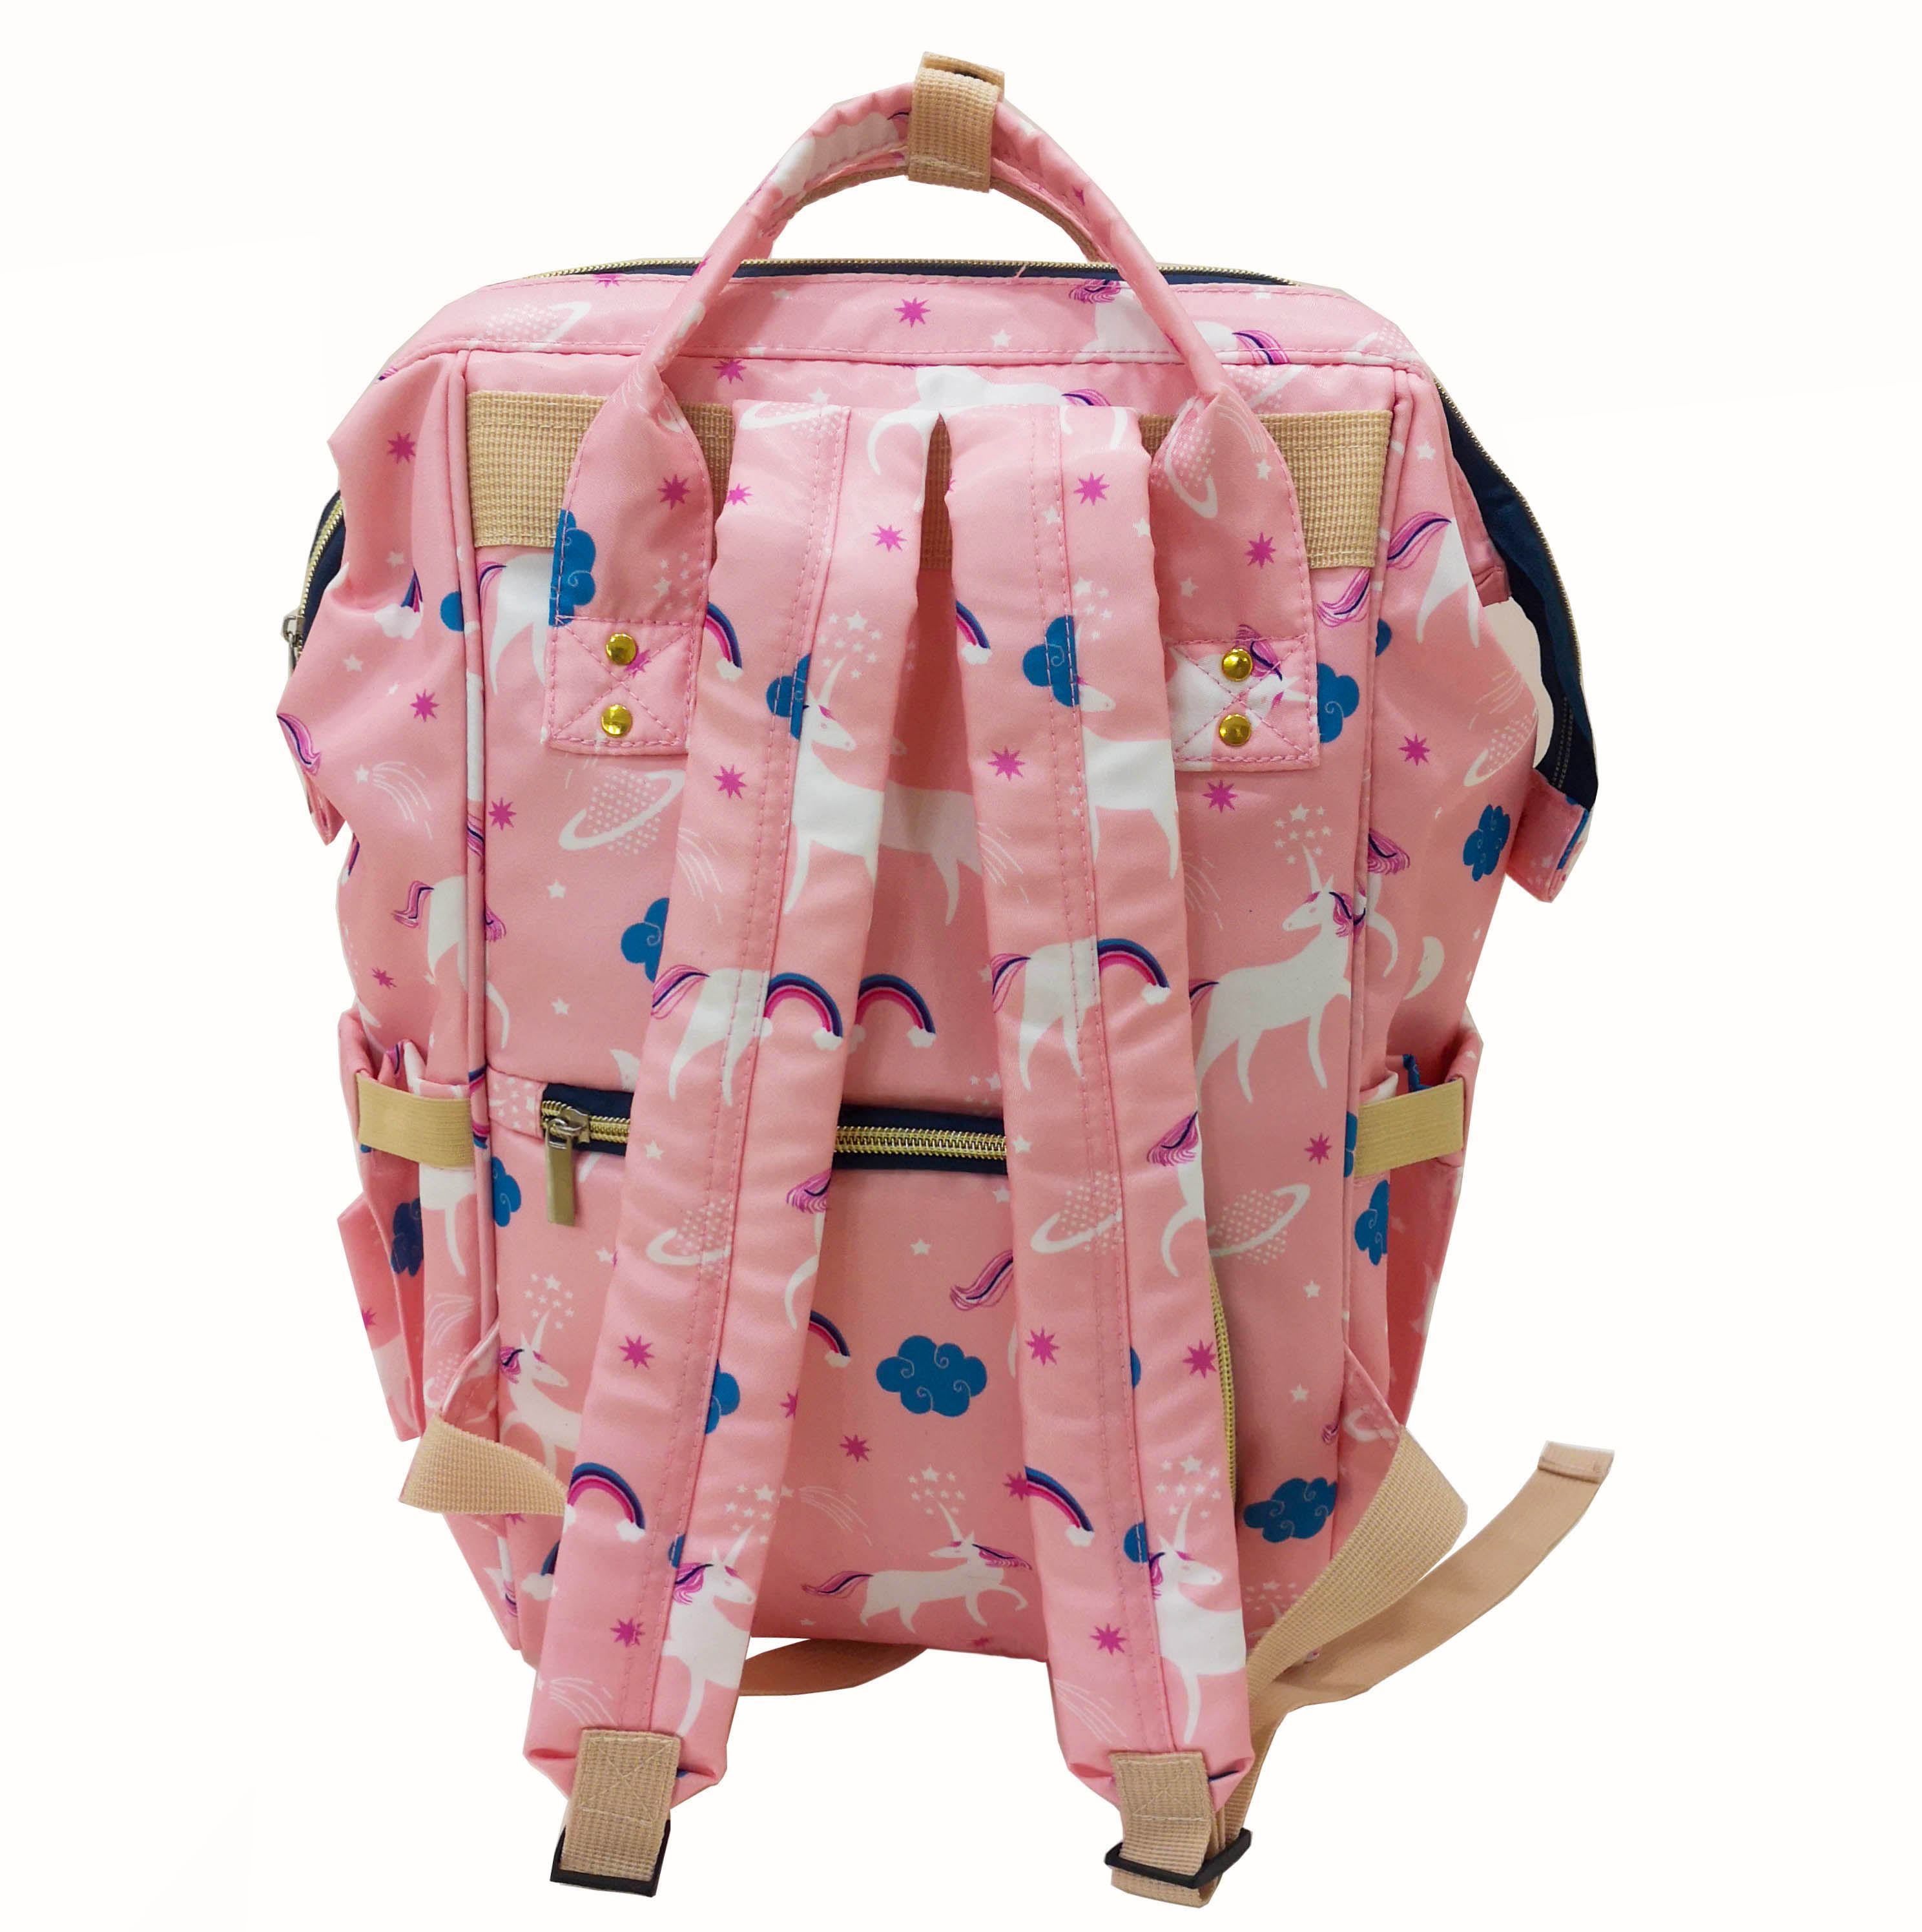 290T twill polyester Mummy backpack